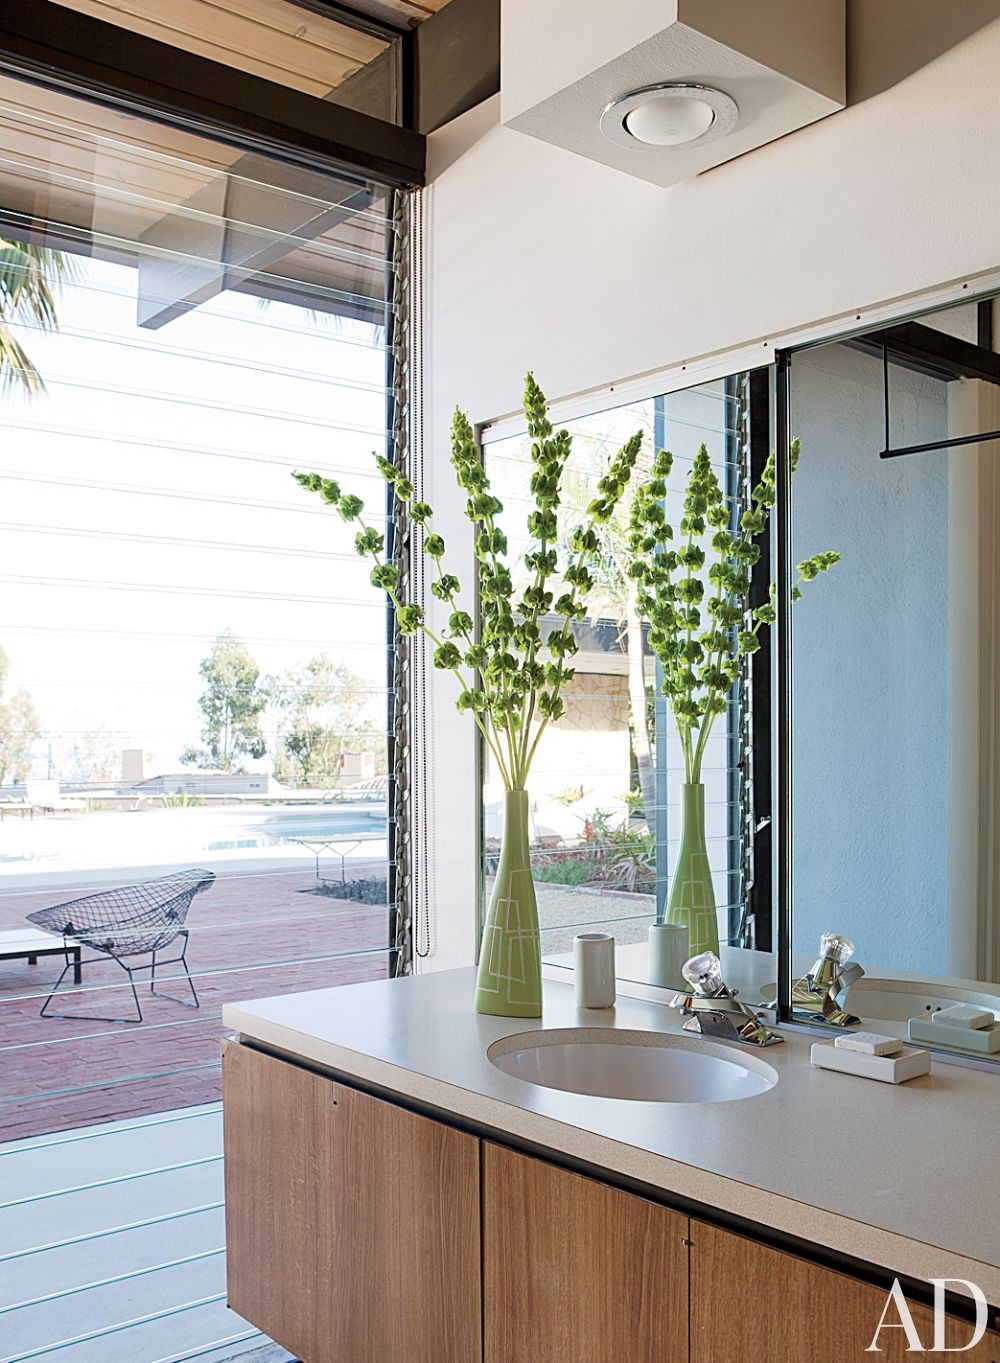 Modern Bathroom by BoydDesign and BoydDesign in Malibu, California